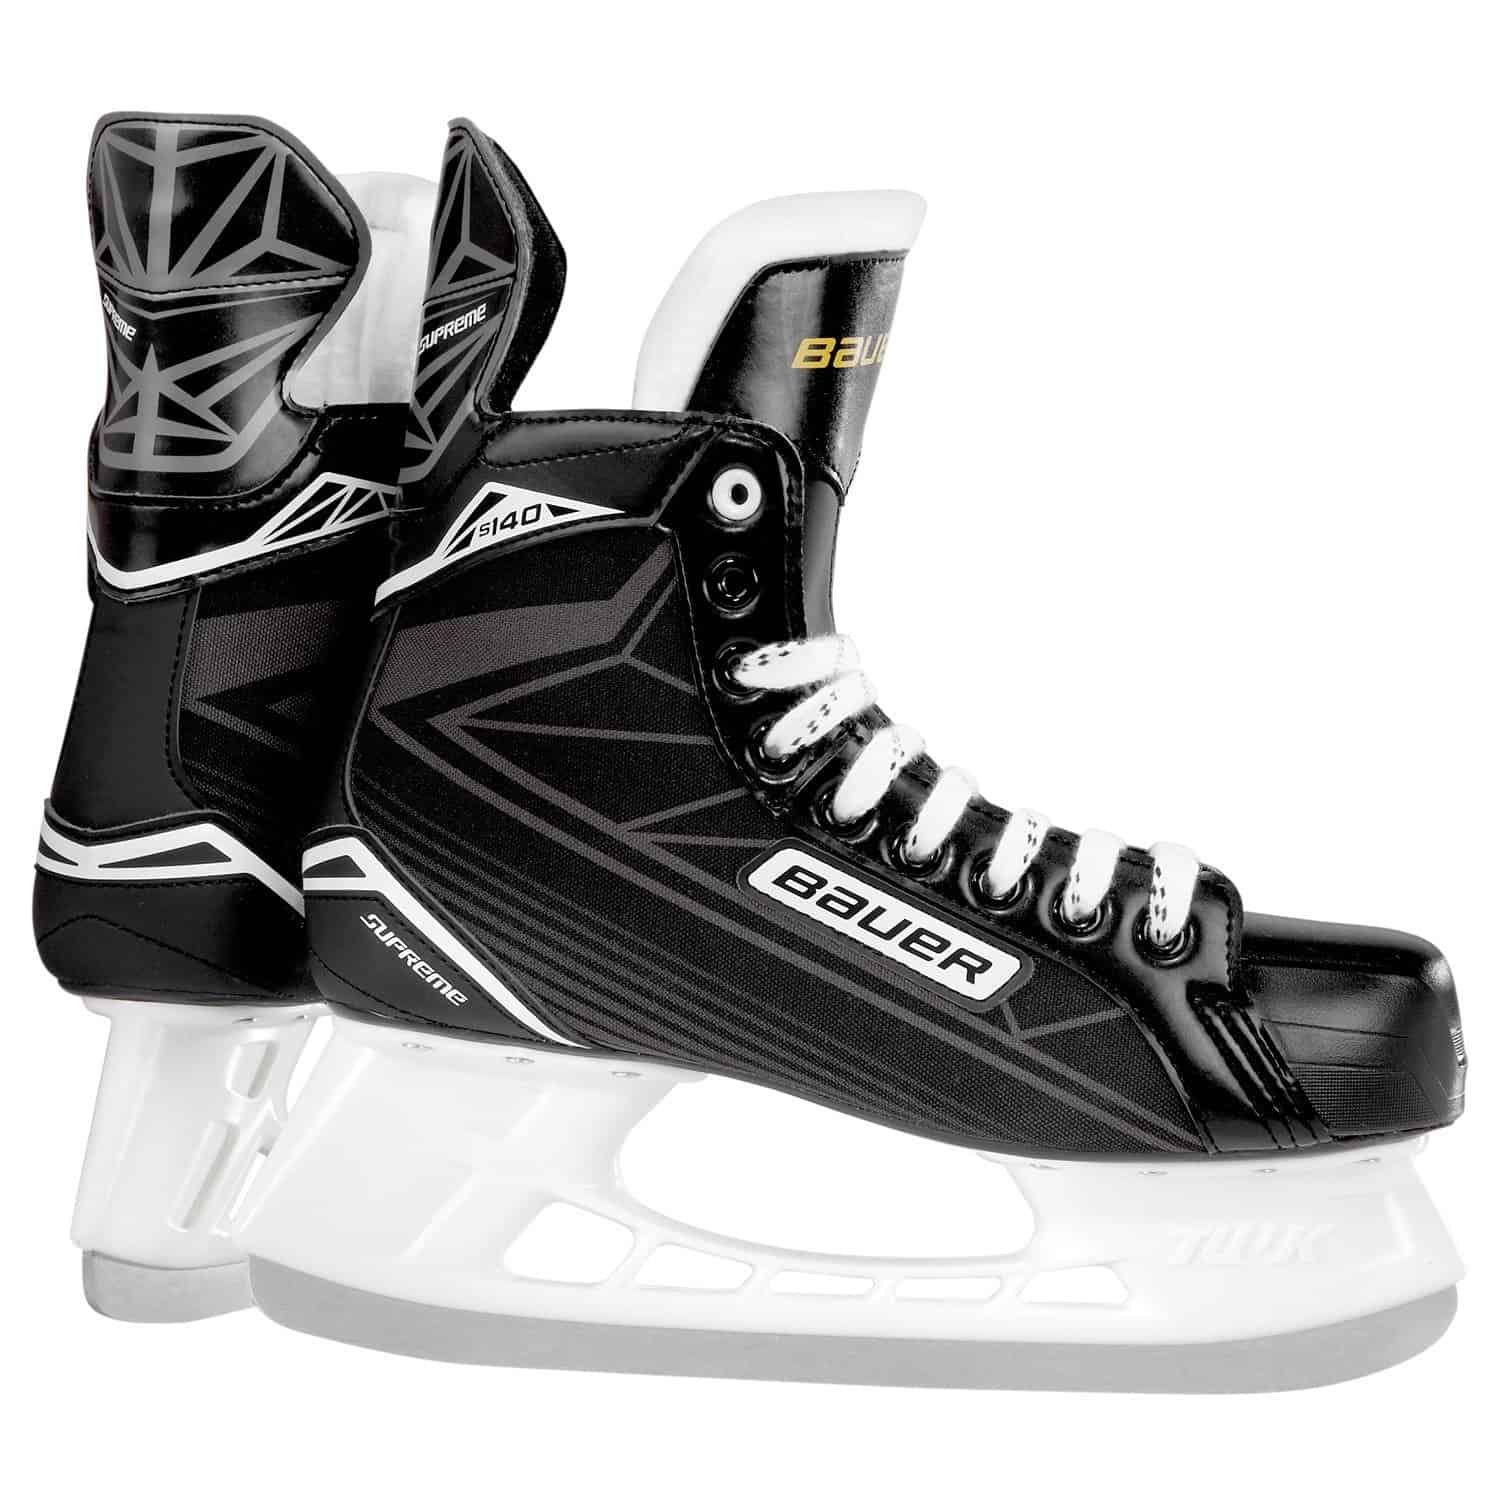 Bauer Supreme S140 Senior Hockey Skate